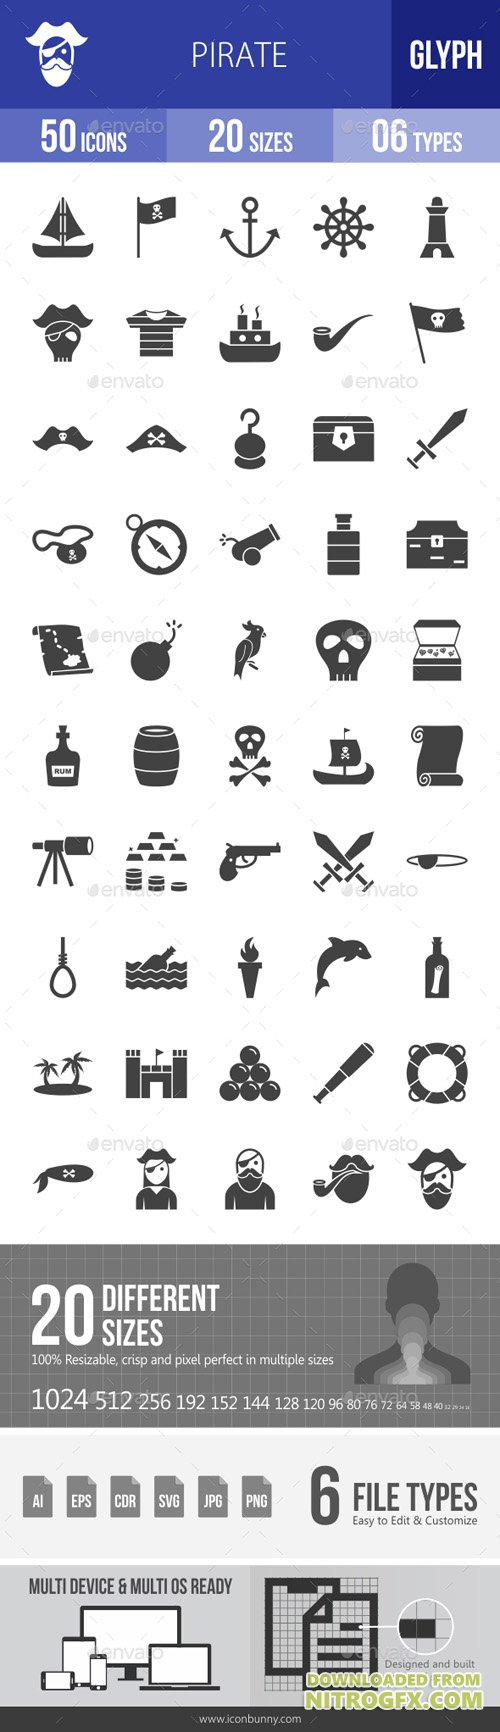 Pirate Glyph Icons 19407583